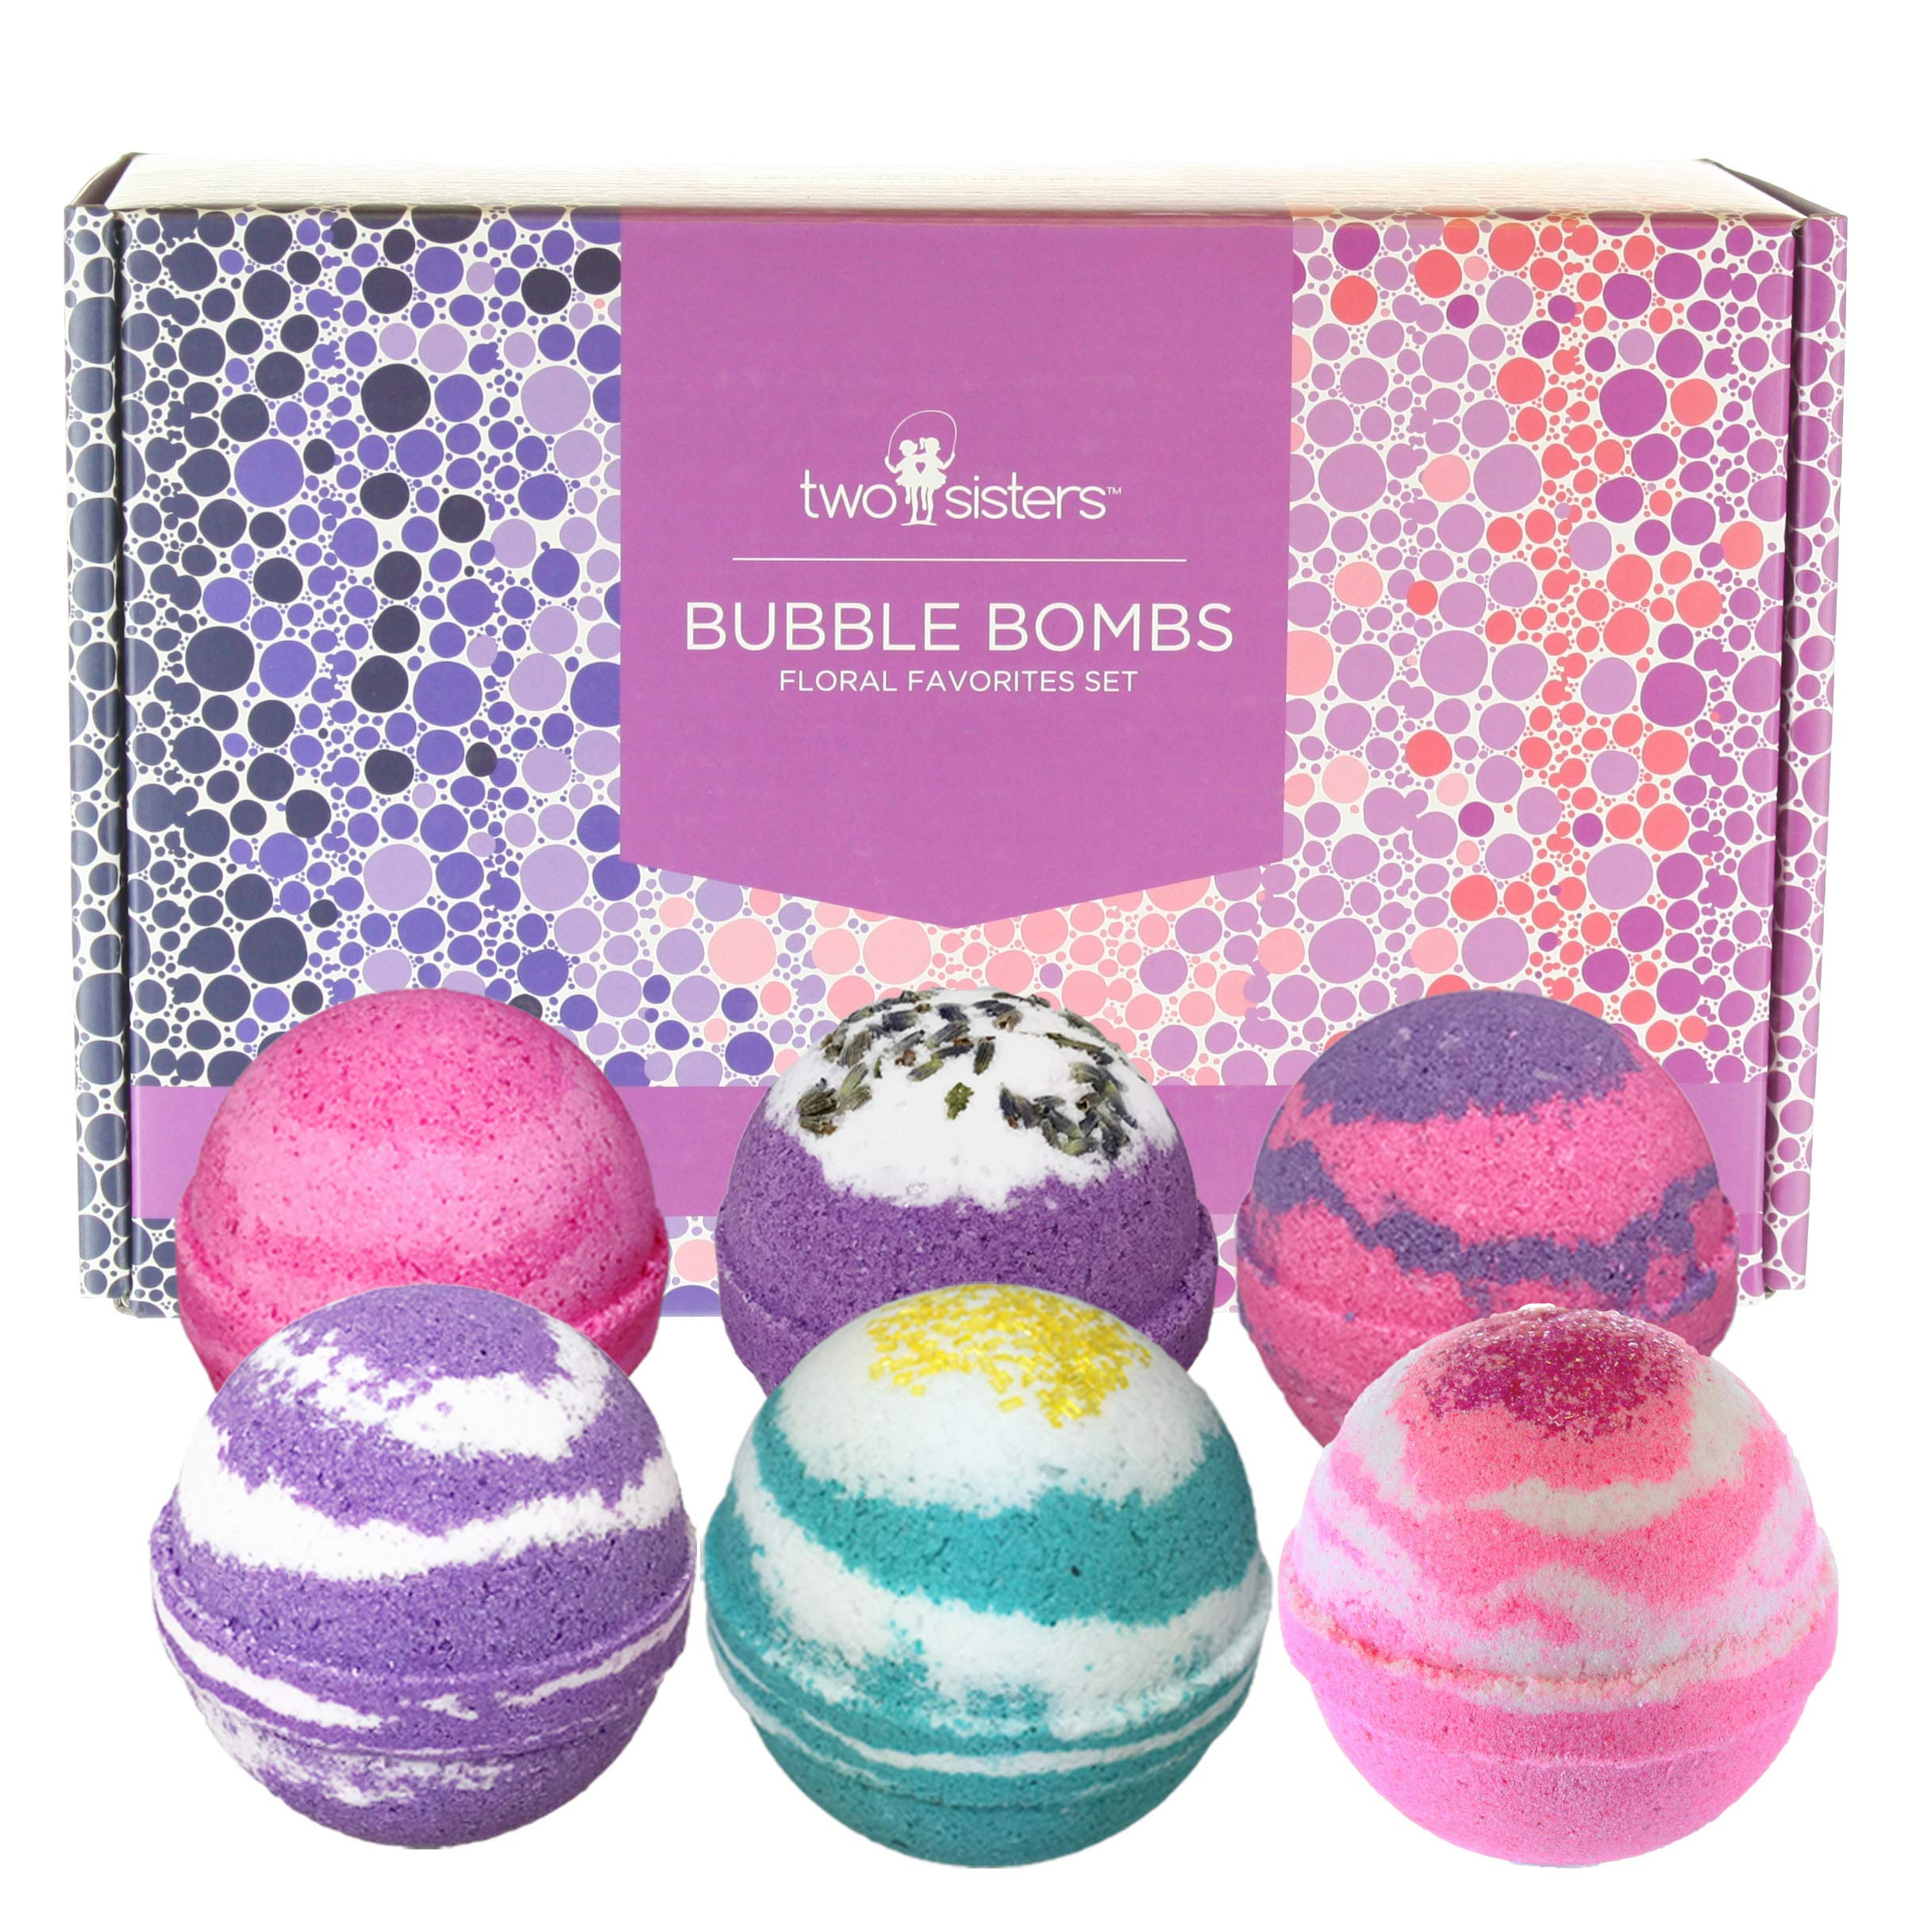 Bath Bombs & Fizzies Cocoa Butter Bath Bomb Truffles Gift Set Bath & Body Gifts For Birthdays,christmas,teacher